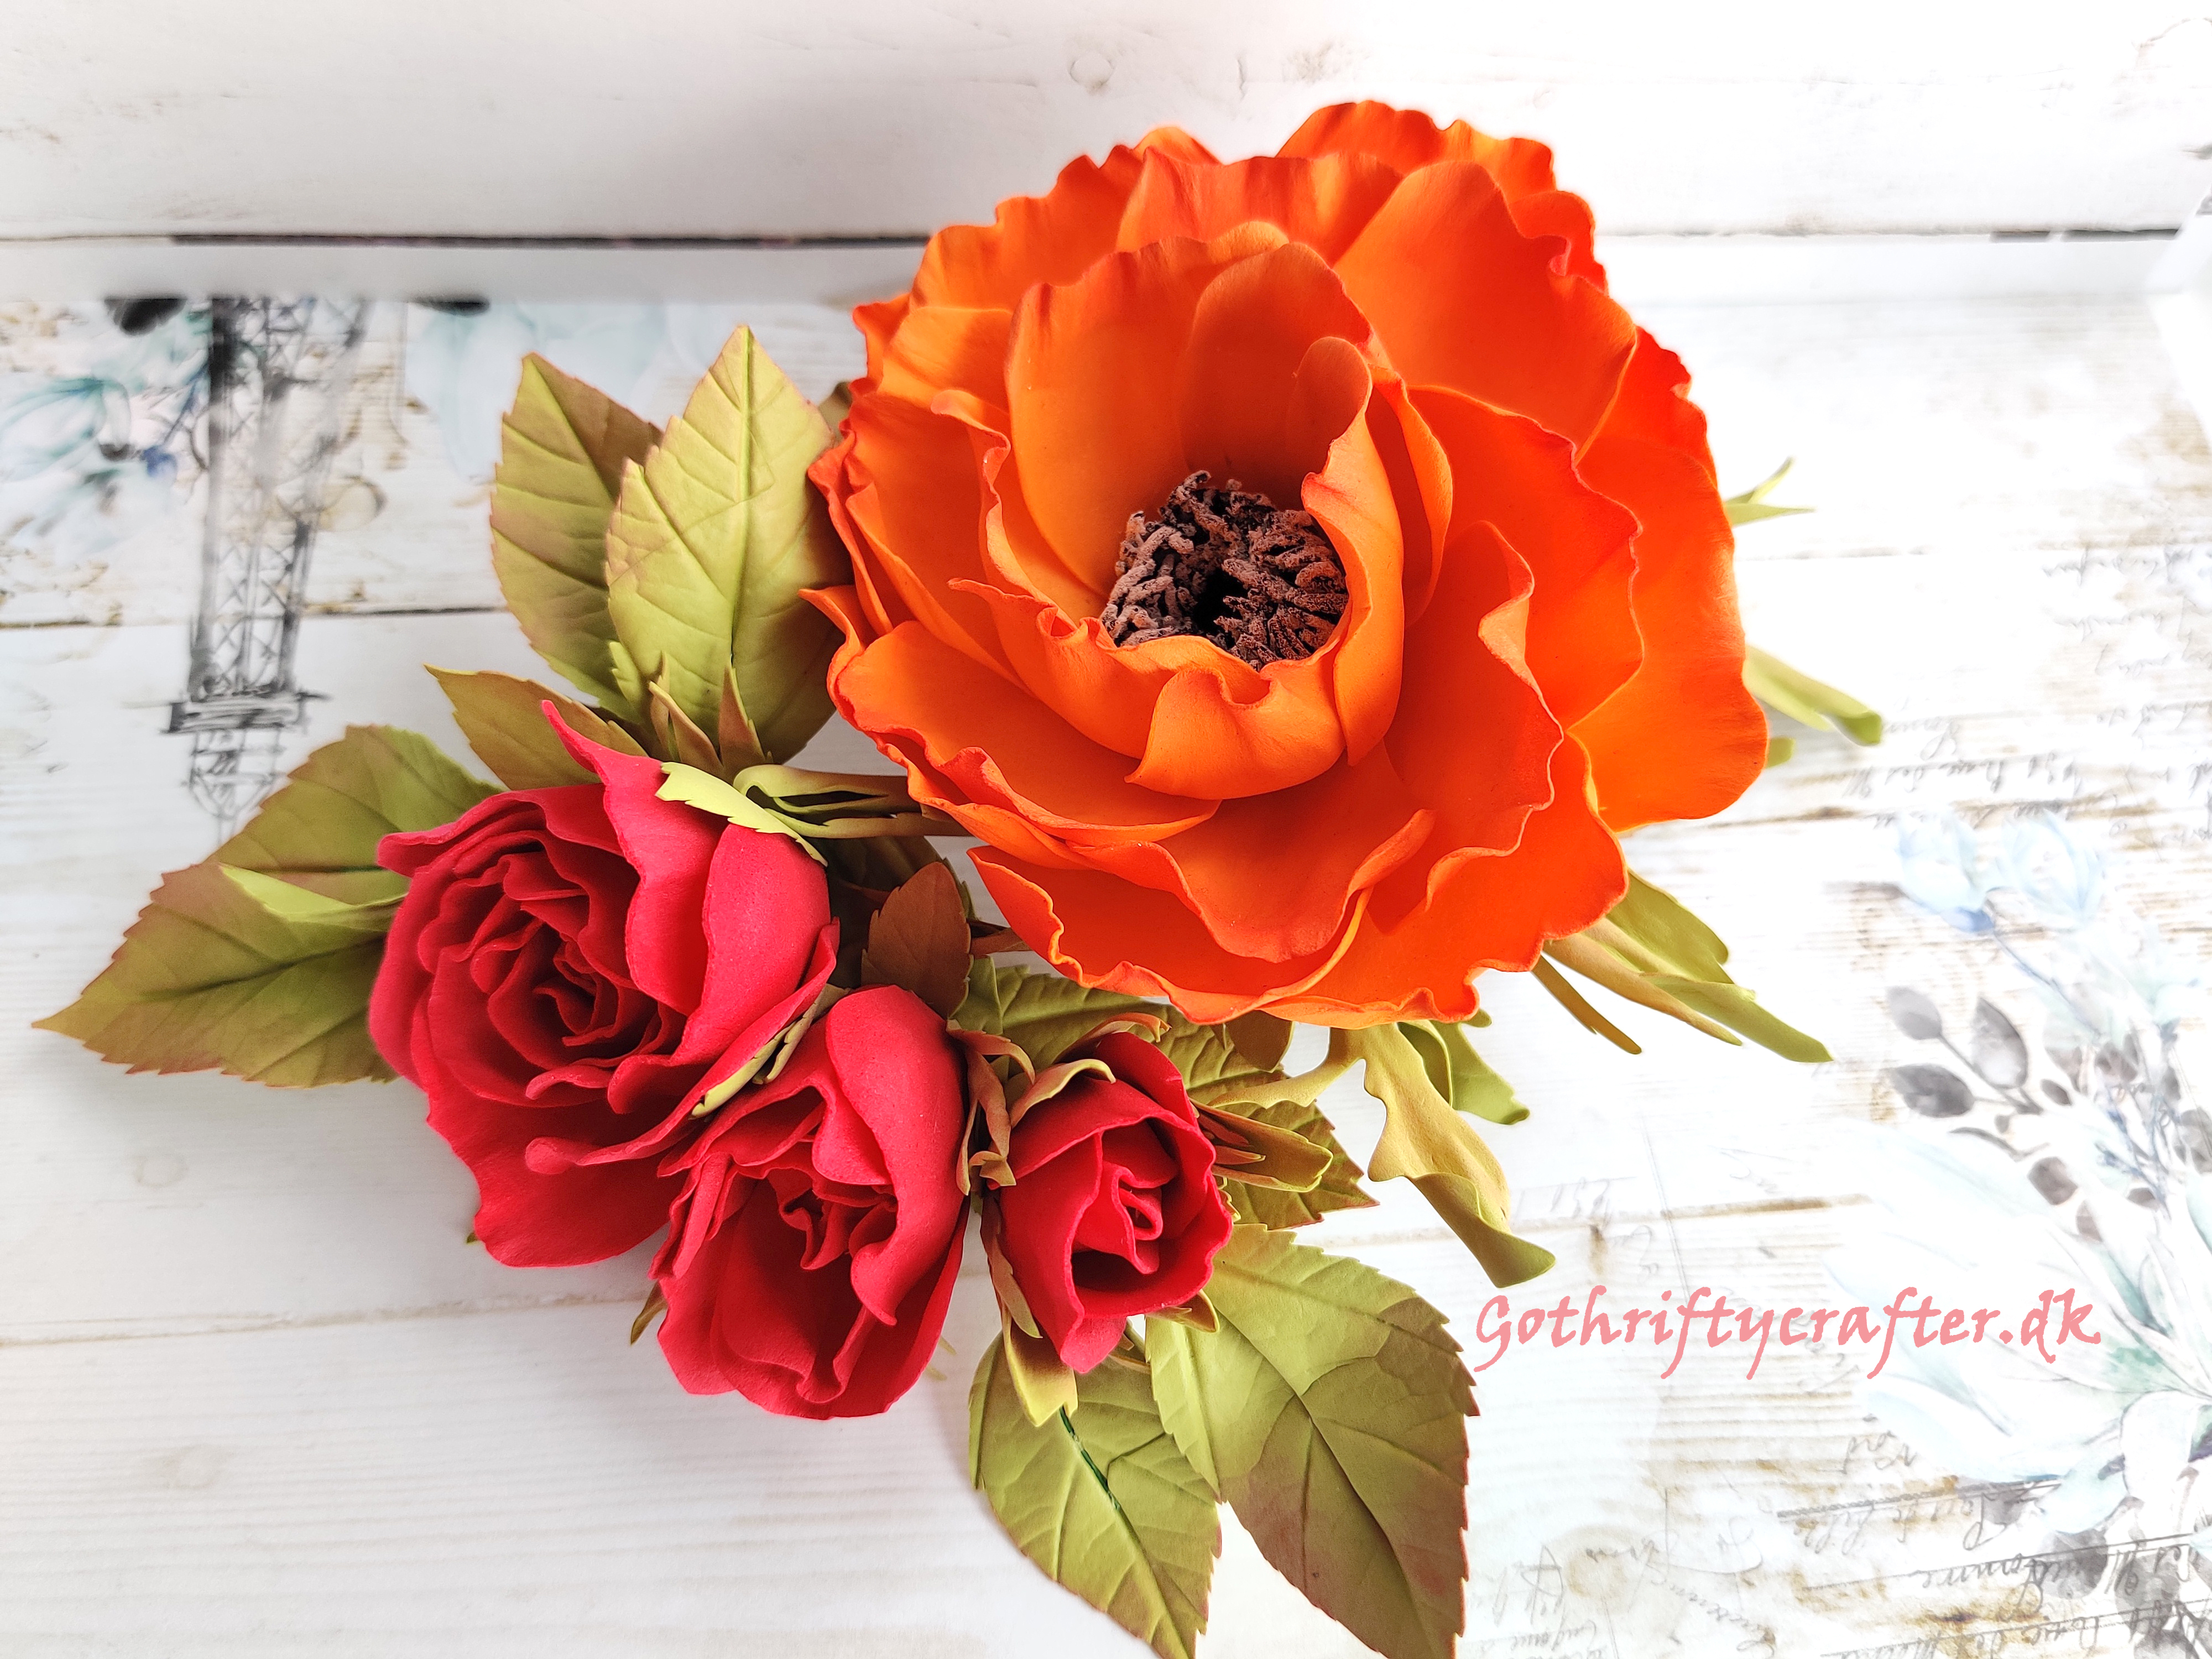 DIY foamiran flowers poppy orange handmade LadyE die rose hairclip hair embellishmentjpg